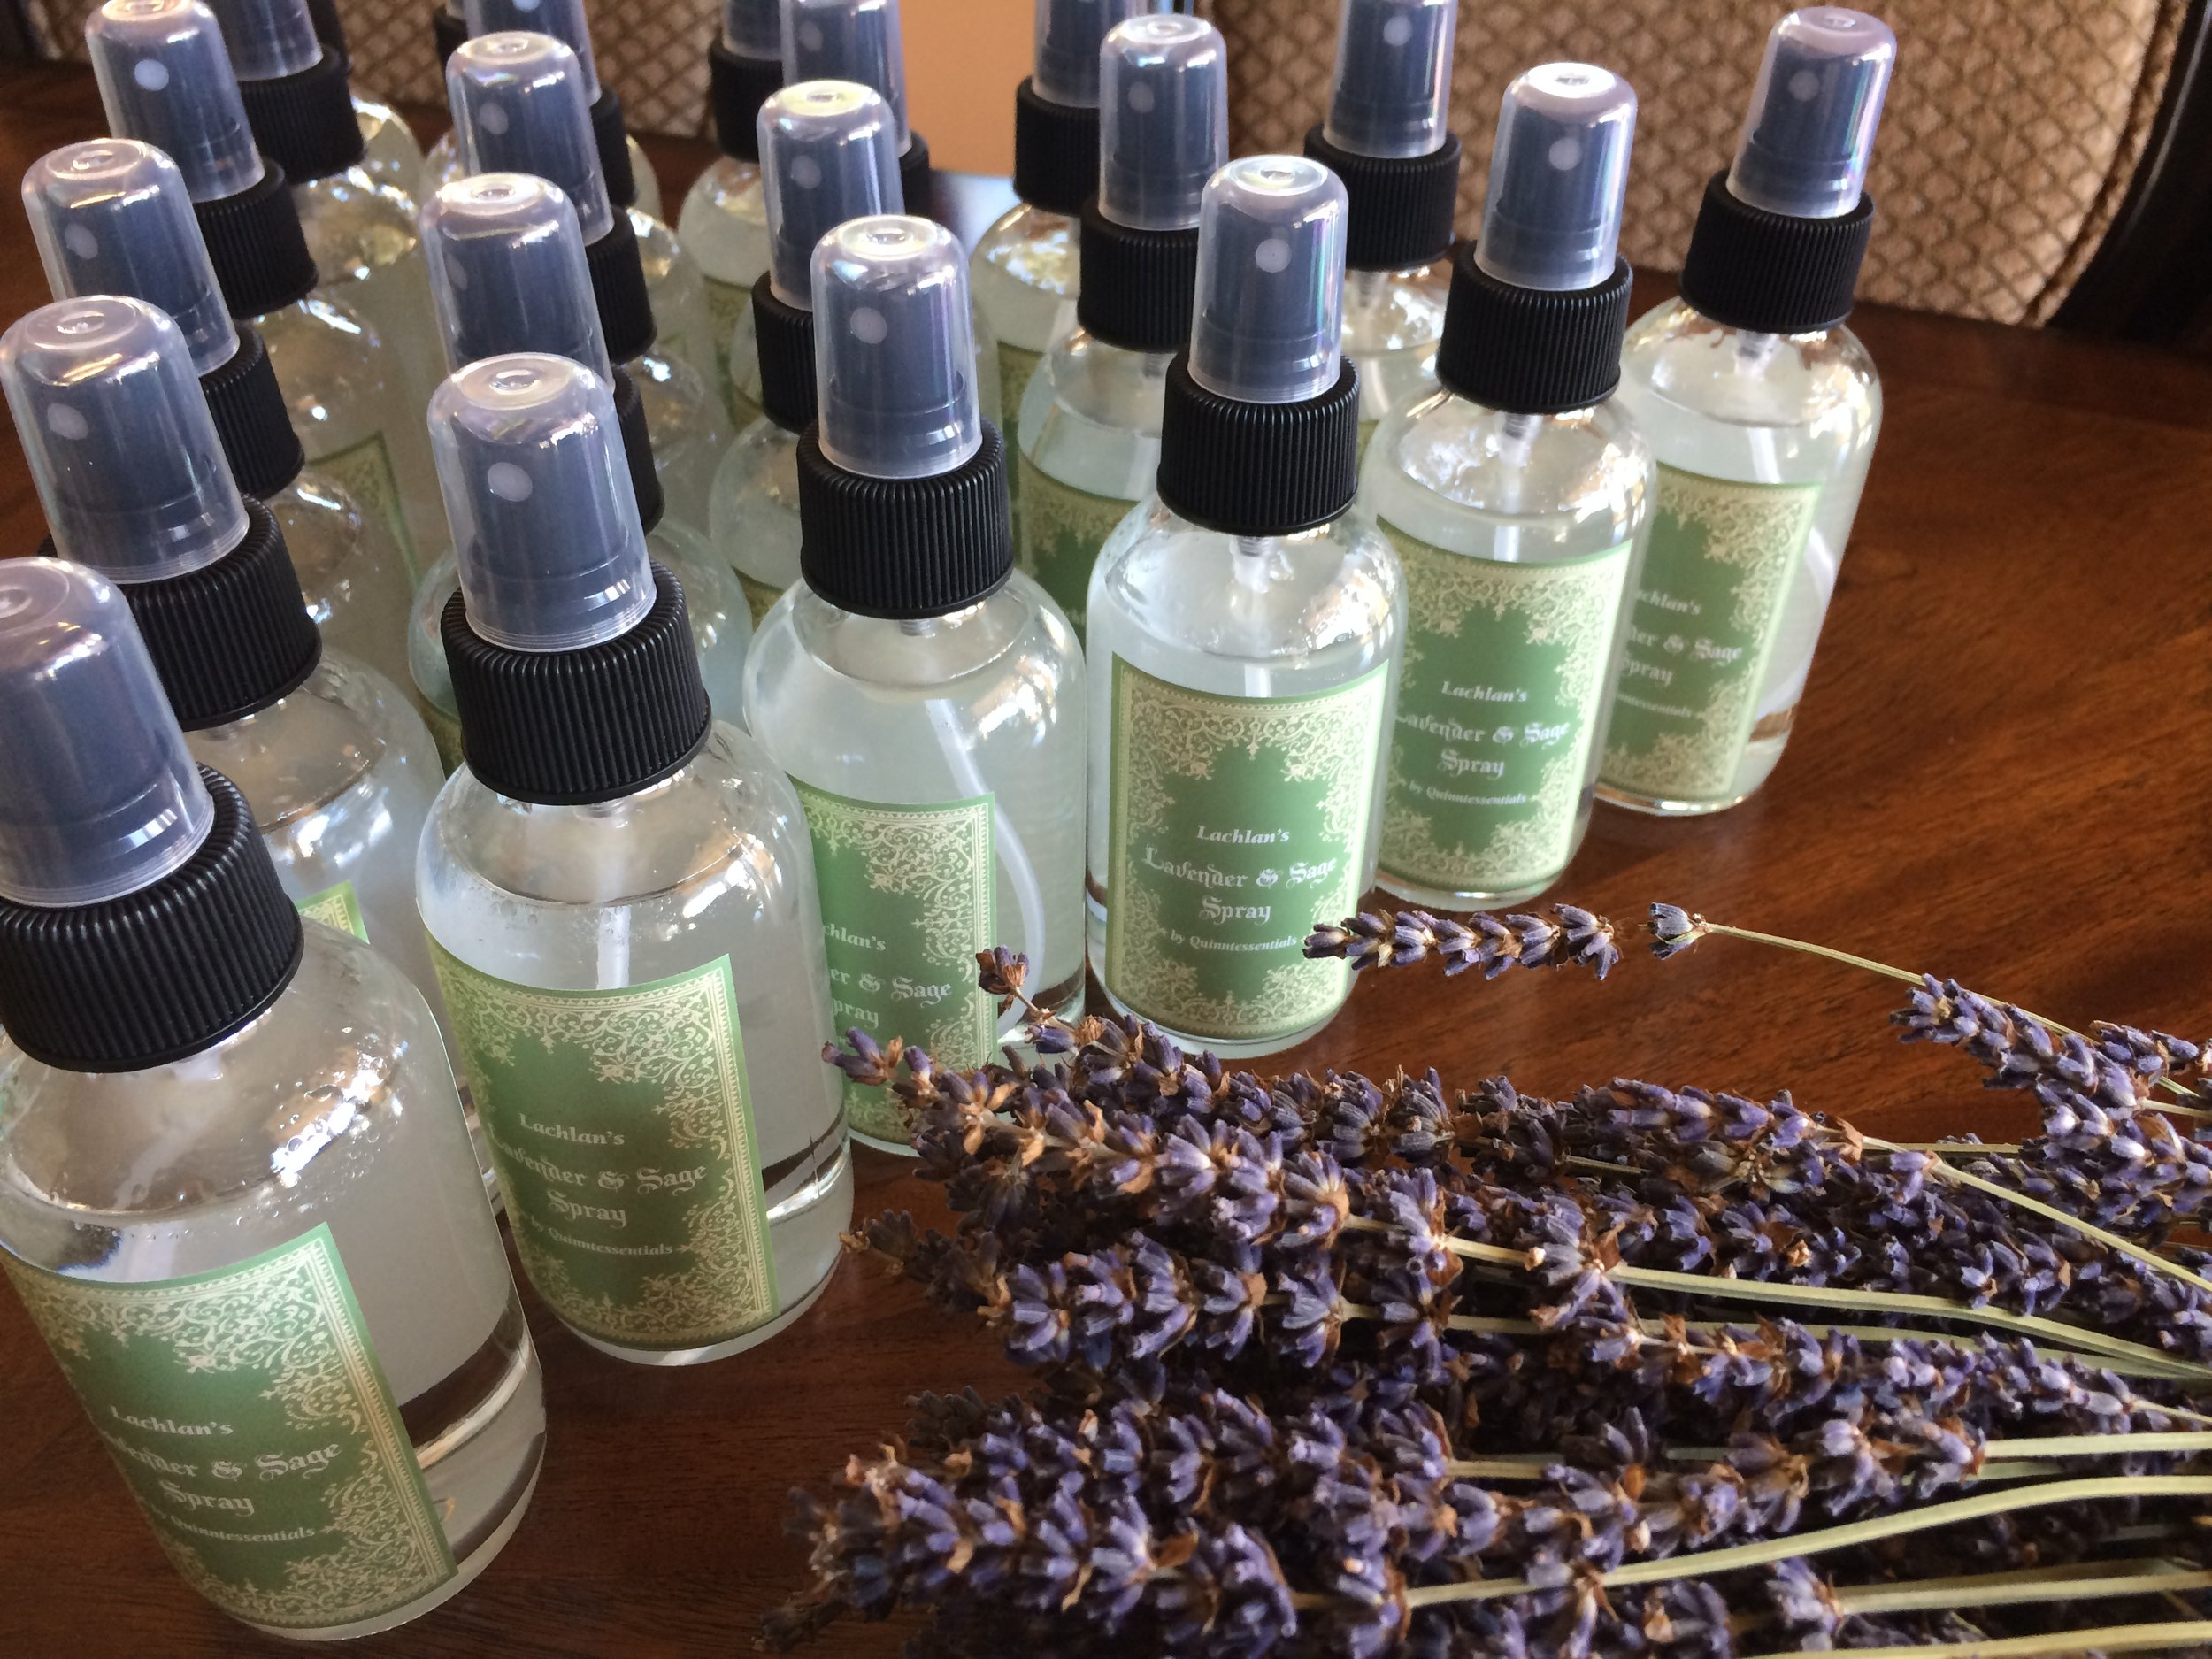 Lachlan's Lavender & Sage sprays were created for a very special baby blessing to welcome a water warrior to the world.